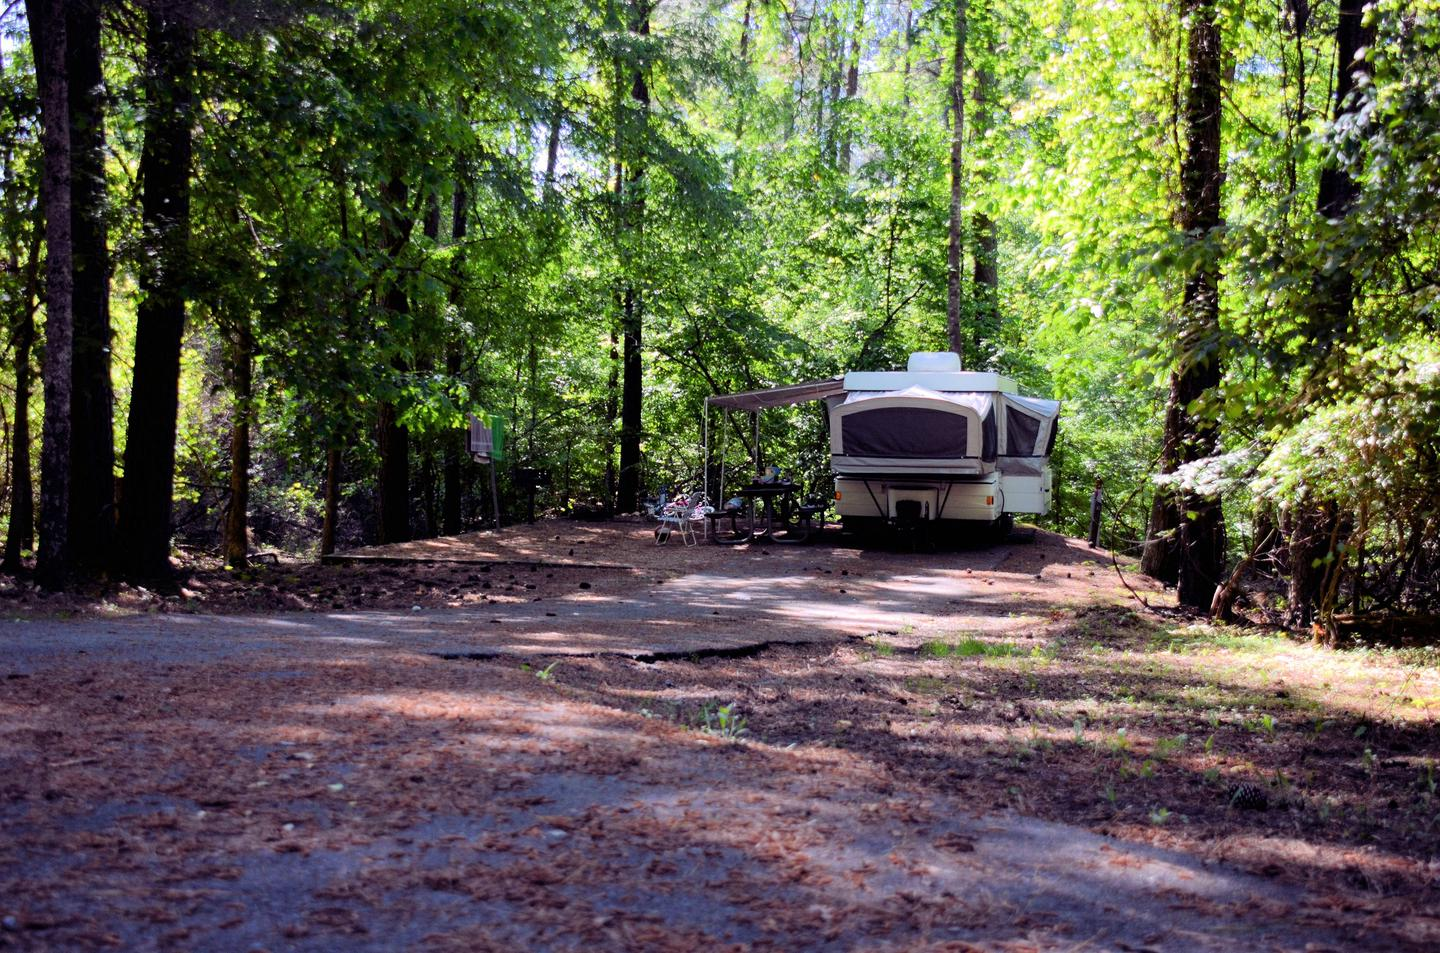 Driveway entrance/slope, utilities-side clearance.McKinney Campground, campsite 58.